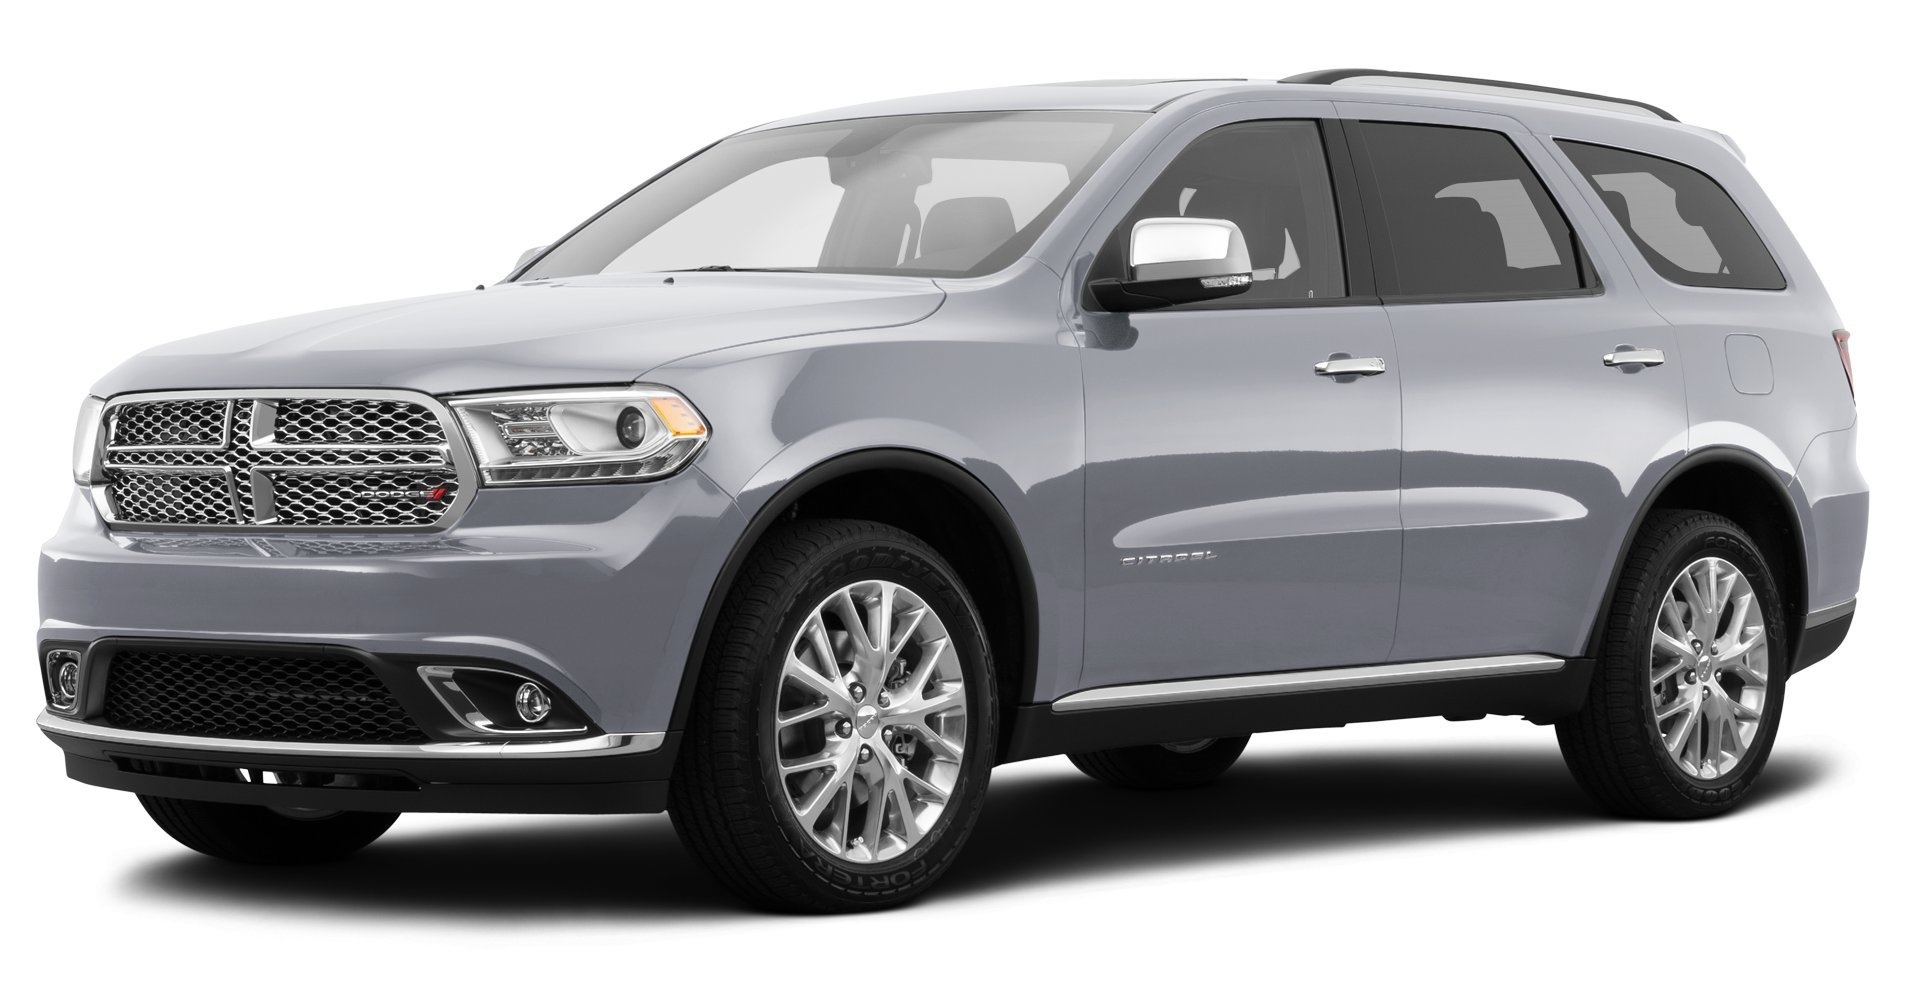 2015 dodge durango reviews images and specs. Black Bedroom Furniture Sets. Home Design Ideas